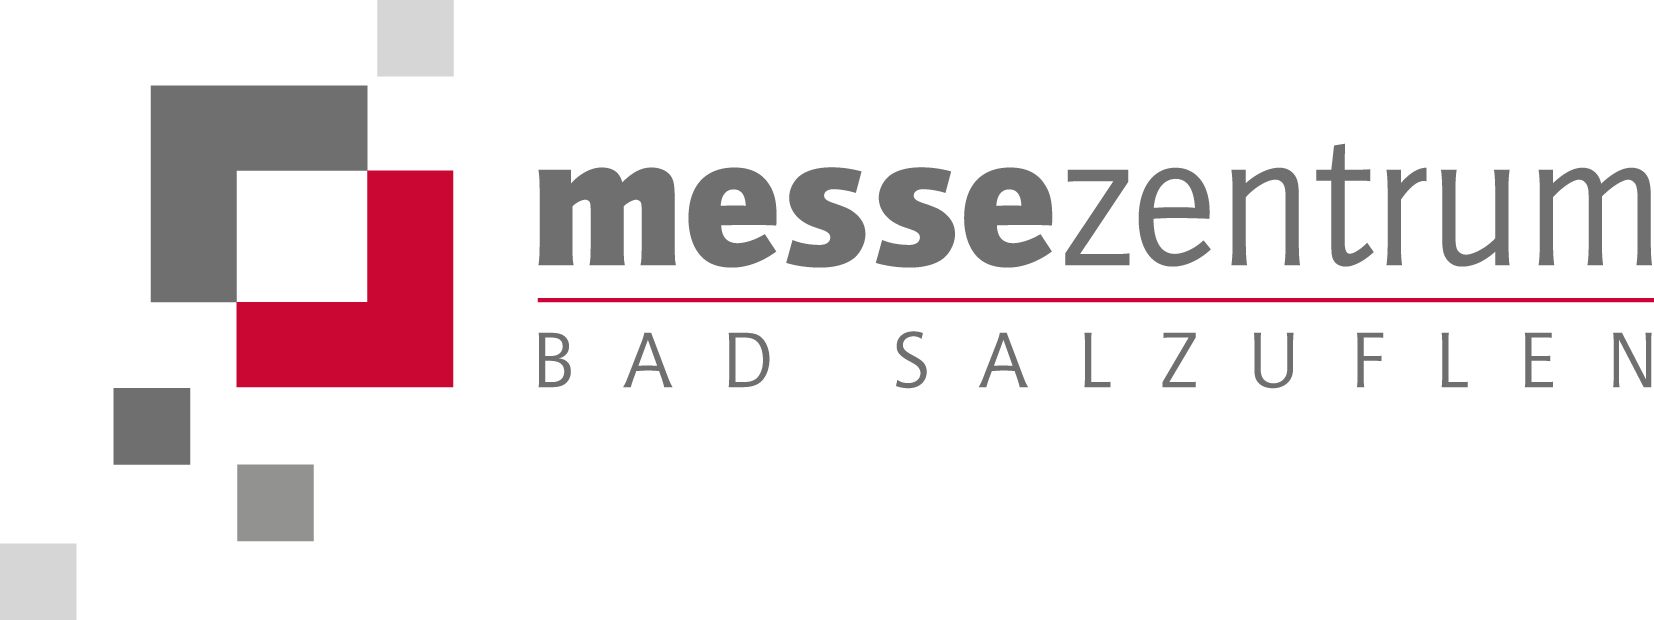 Logo Messezentrum Bad Salzuflen